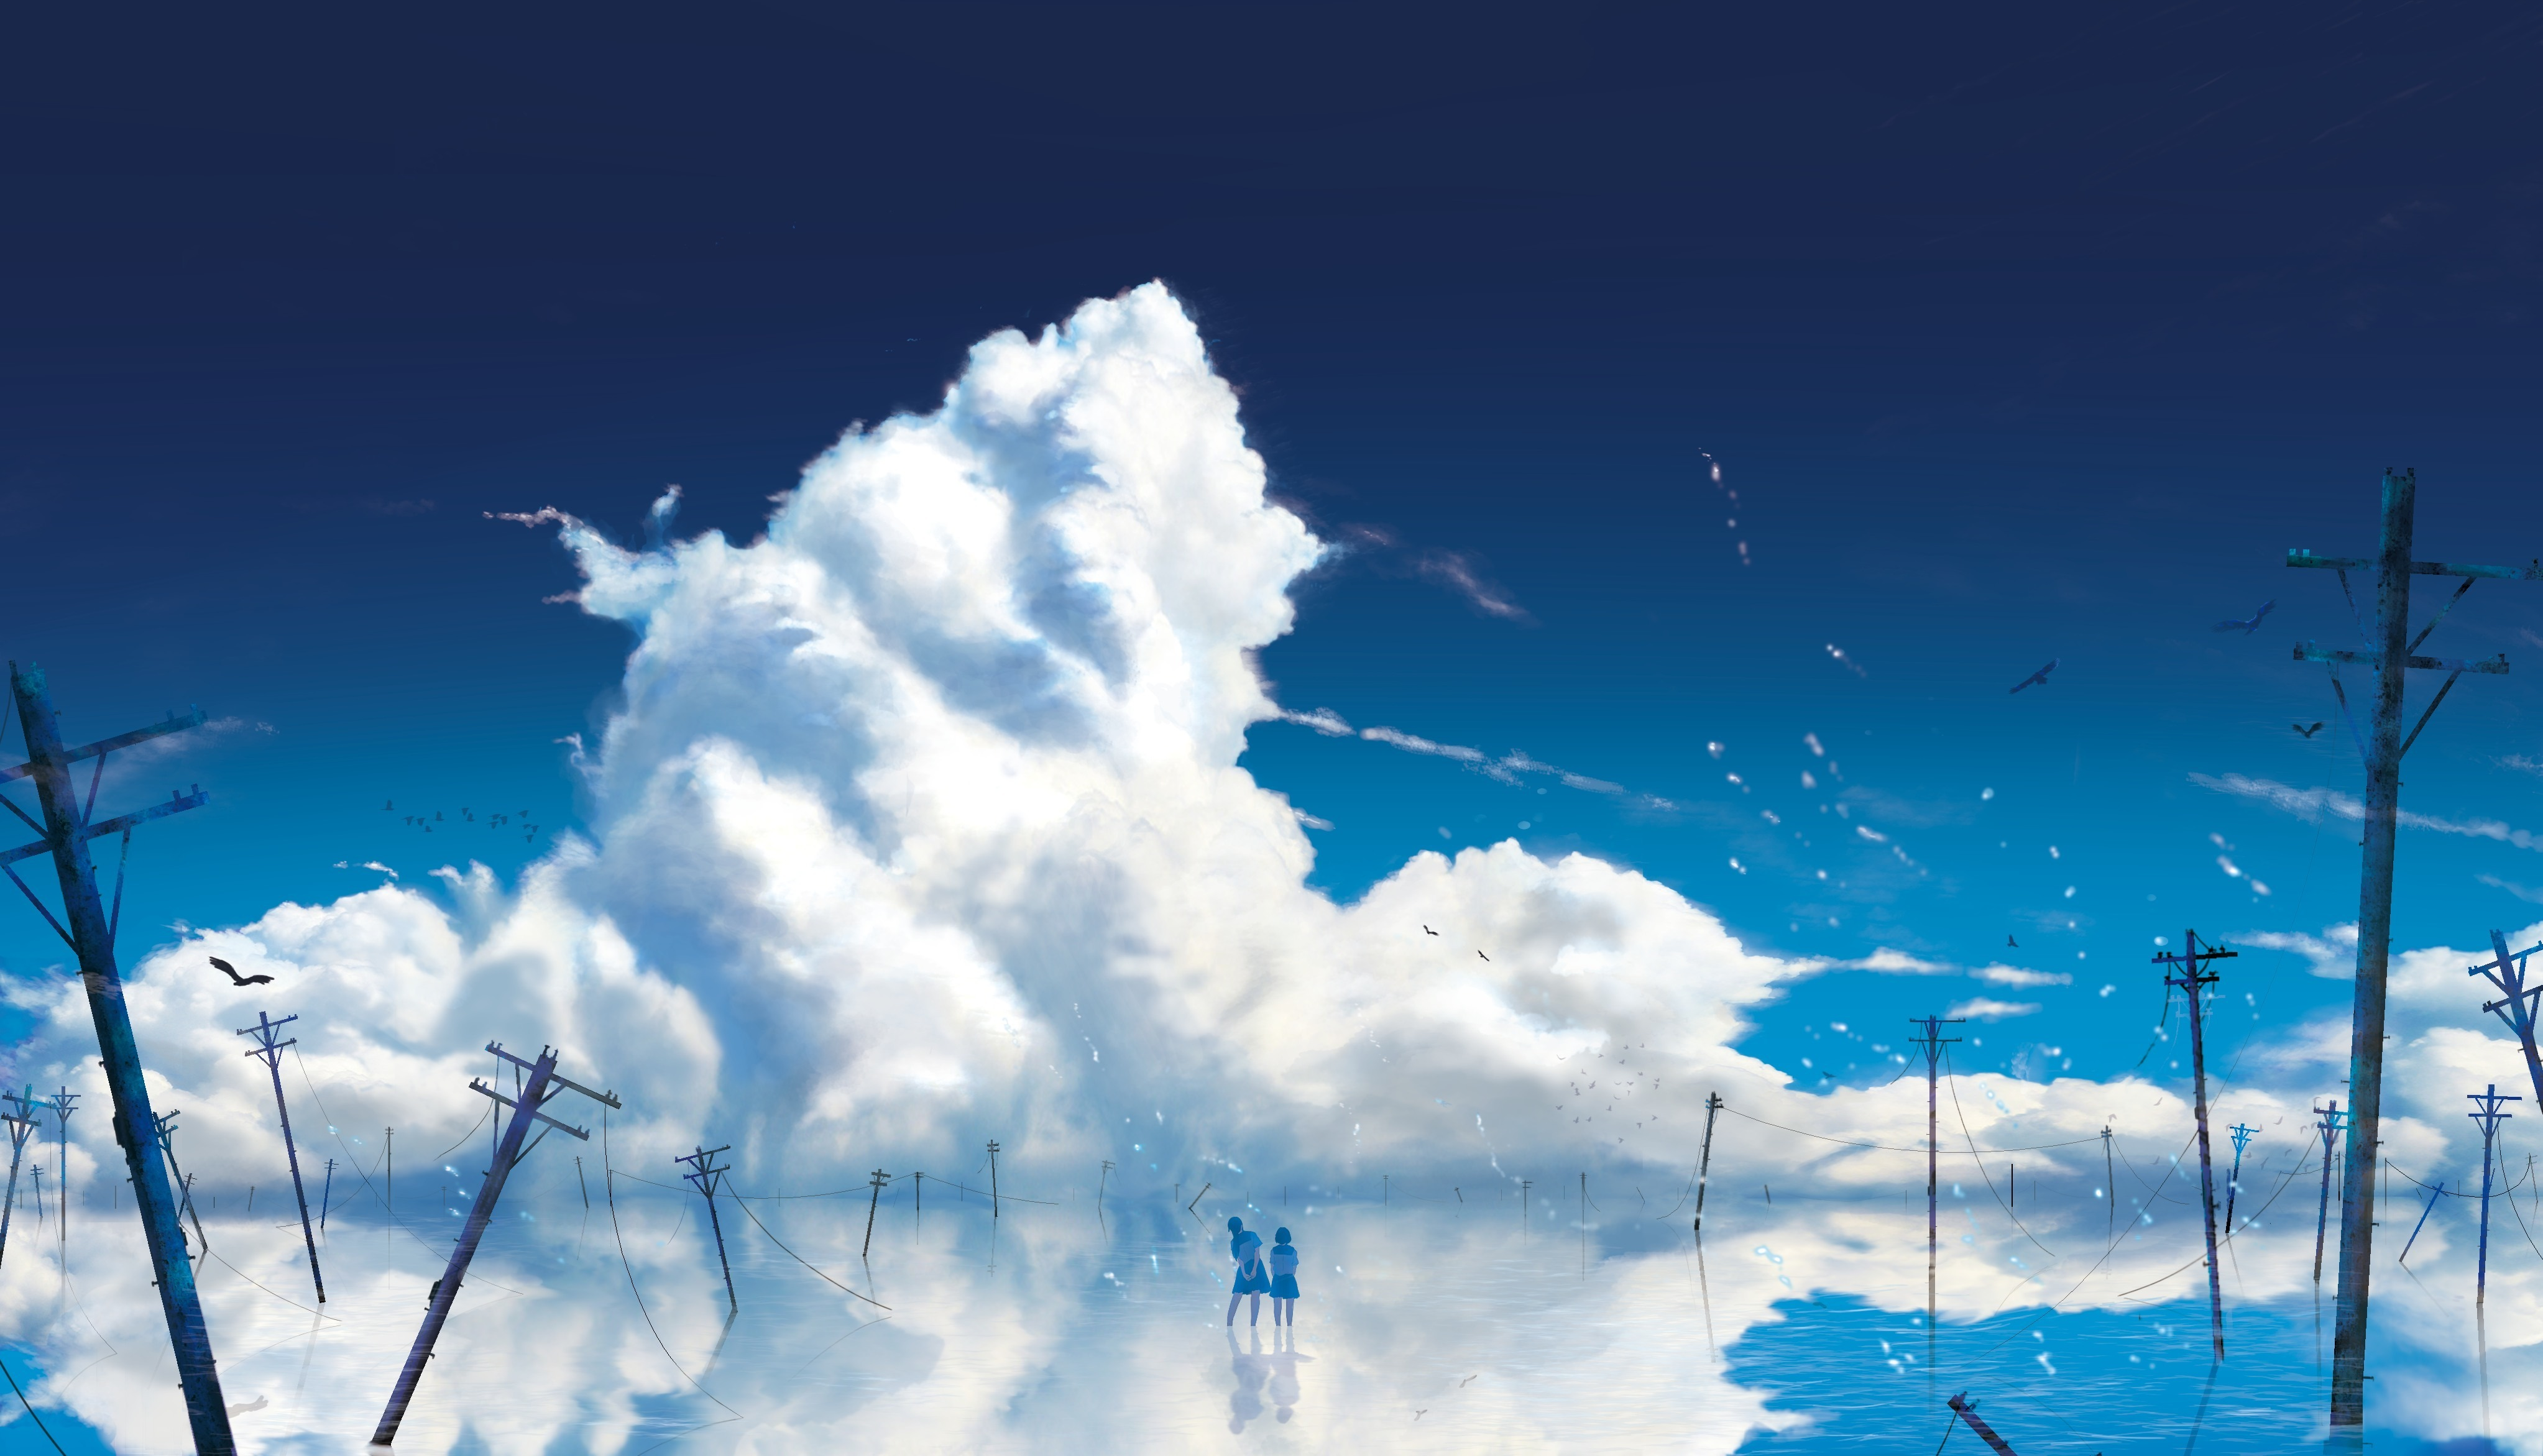 Anime girls outdoor clouds